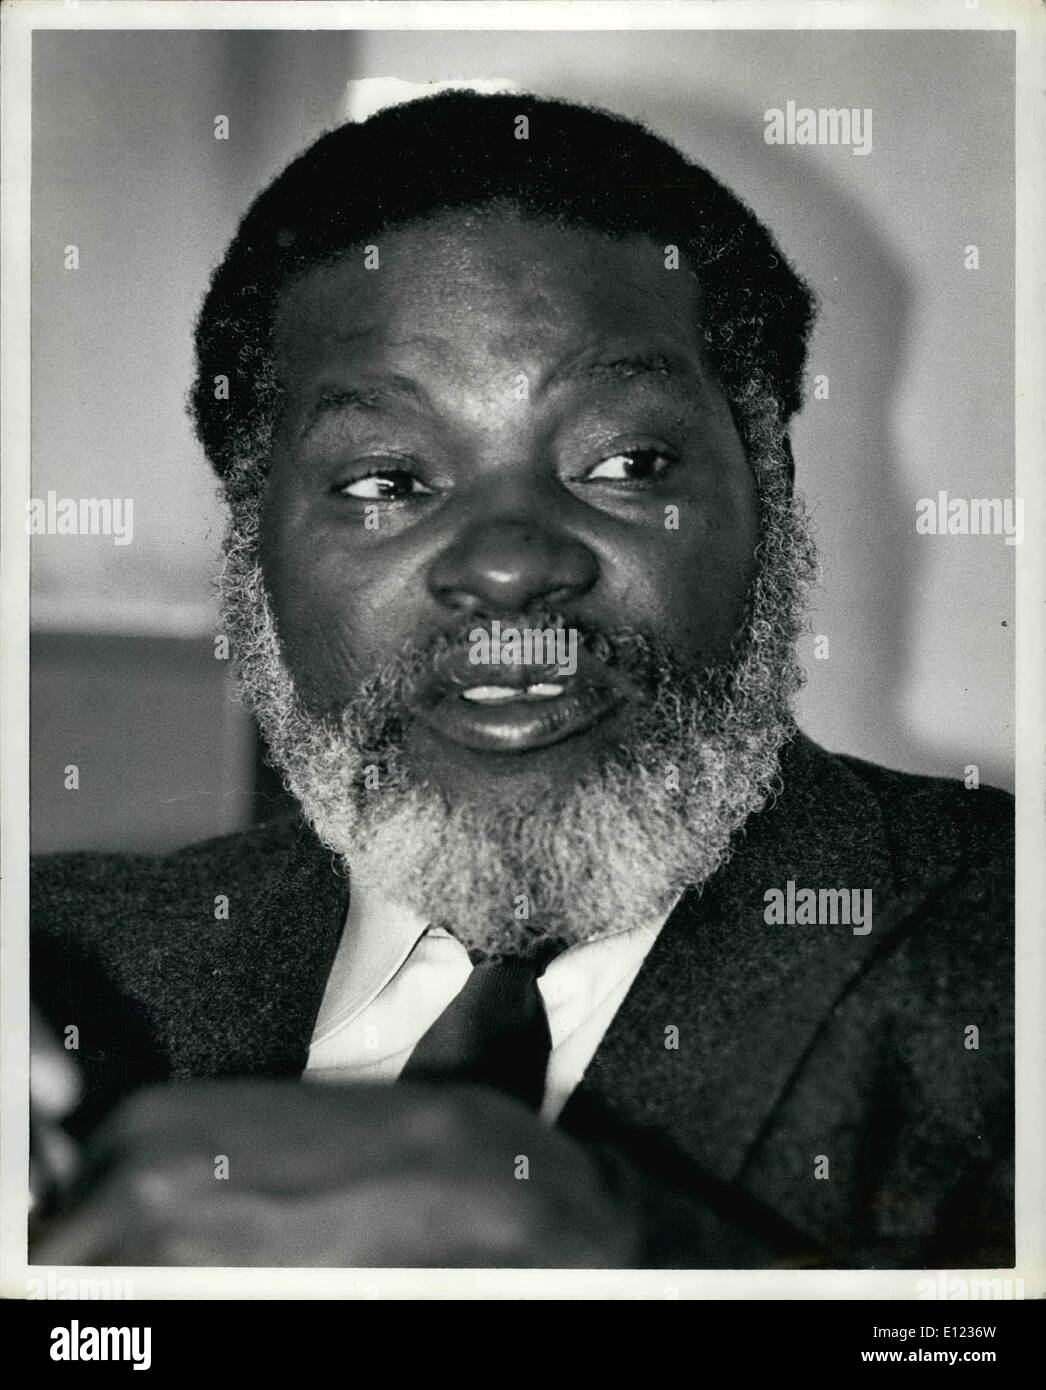 Feb. 02, 1984 - GUERRILLA LEADER SAM NUJOMA, PRESIDENT OF THE SOUTH WEST AFRICA PEOPLE'S ORGANIZATION, SAID HIS MEN WOULD CONTINUE TO FIGHT INSIDE NAMIBIA (SOUTH WEST AFRICA) WHILE OBSERVING A RECENTLY CONCLUDED DISENGAGEMENT ACCORD BETWEEN ANGOLA AND SOUTH AFRICA. MR. NUJOMA, ON THE TAIL END OF A TRIP THAT HAS TAKEN HIM TO SIX COUNTRIES MADE HIS REMARKS DURING AN INTERVIEW AT THE UNITED NATIONS HOTEL IN NEW YORK CITY. ''THE FIGHT IN NAMIBIA WILL CONTINUE, BECAUSE THERE IS NO CEASE-FIRE IN NAMIBIA'' MR. NUJOMA SAID THOUGH HE ADDED THAT SWAPO WAS READY TO SIGN A CEASE-FIRE WITH SOUTH AFRICA. O - Stock Image